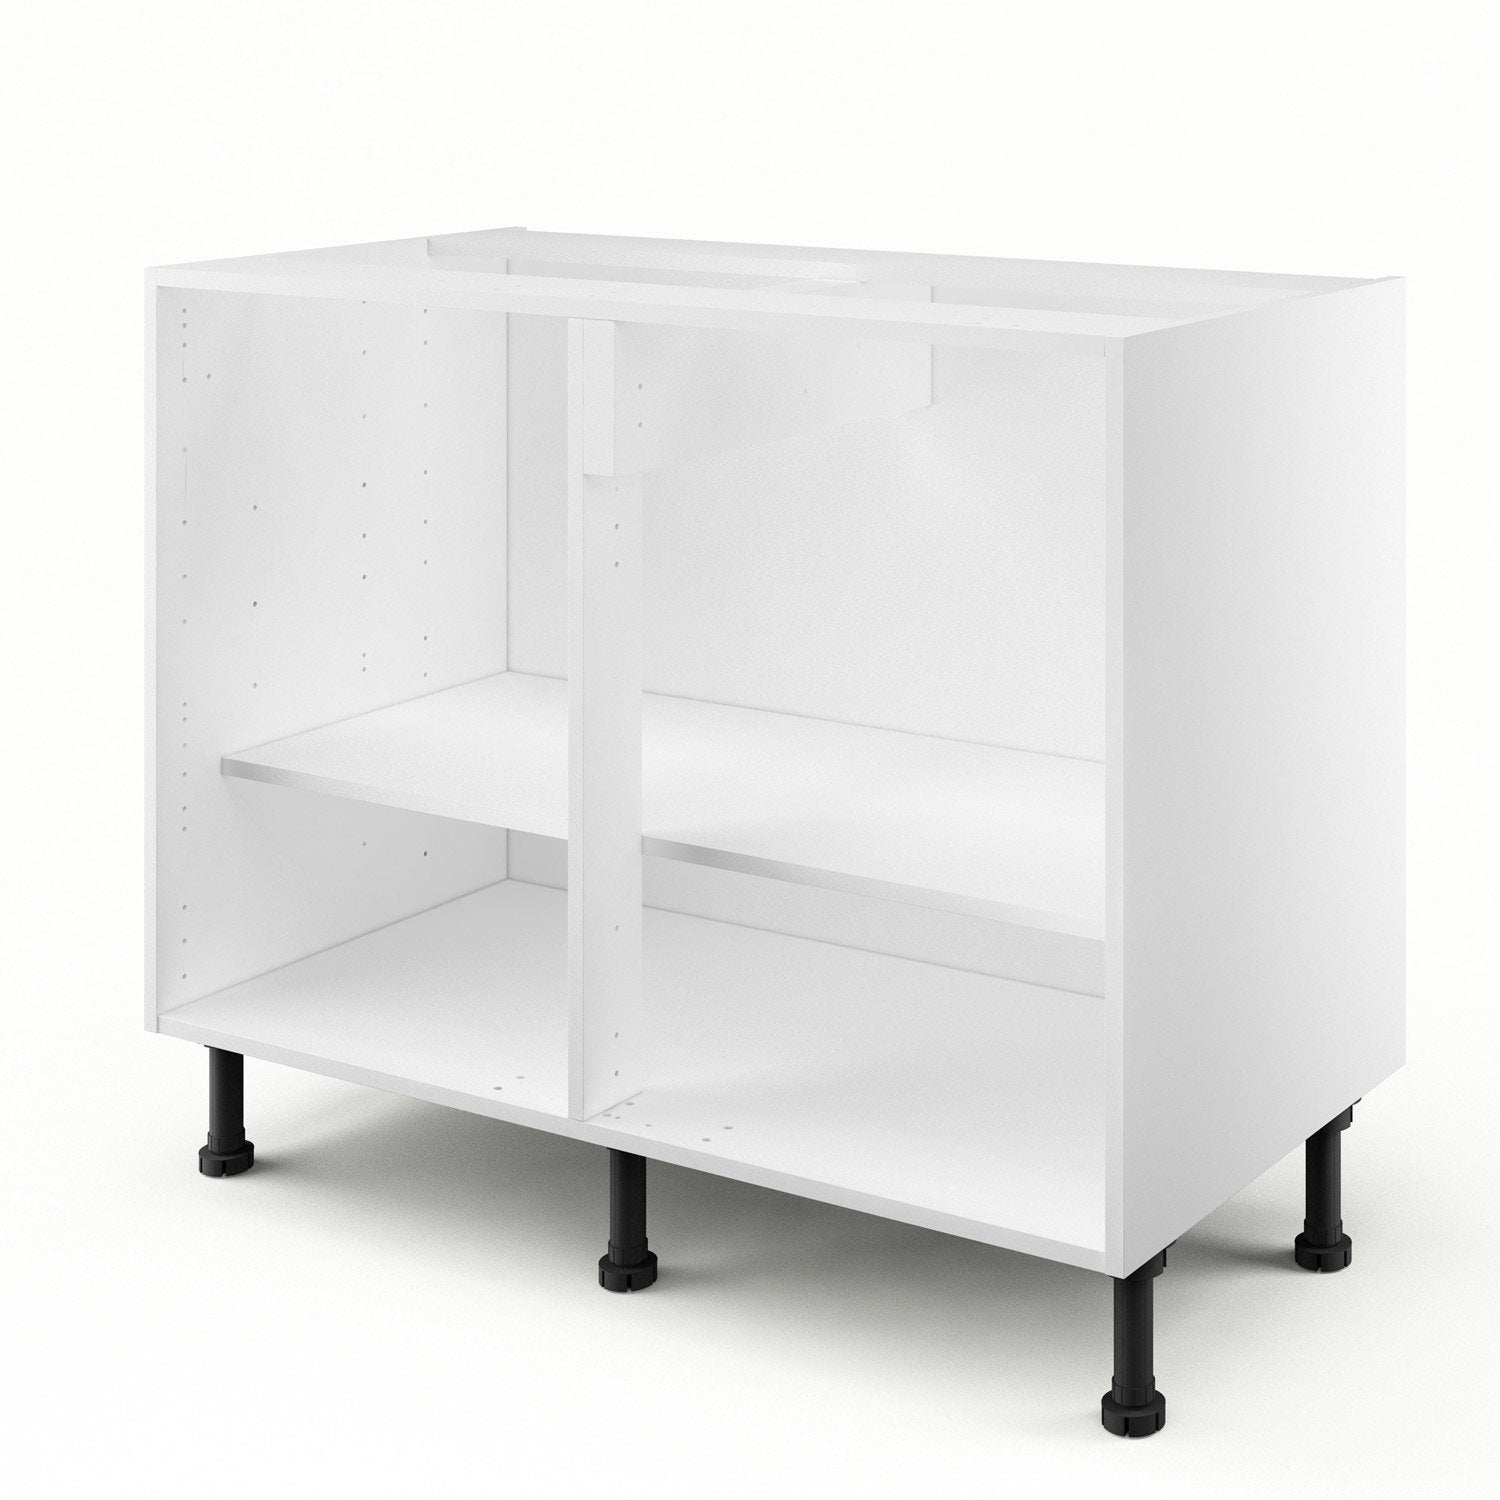 caisson de cuisine bas b100 ab100 delinia blanc x x cm leroy merlin. Black Bedroom Furniture Sets. Home Design Ideas